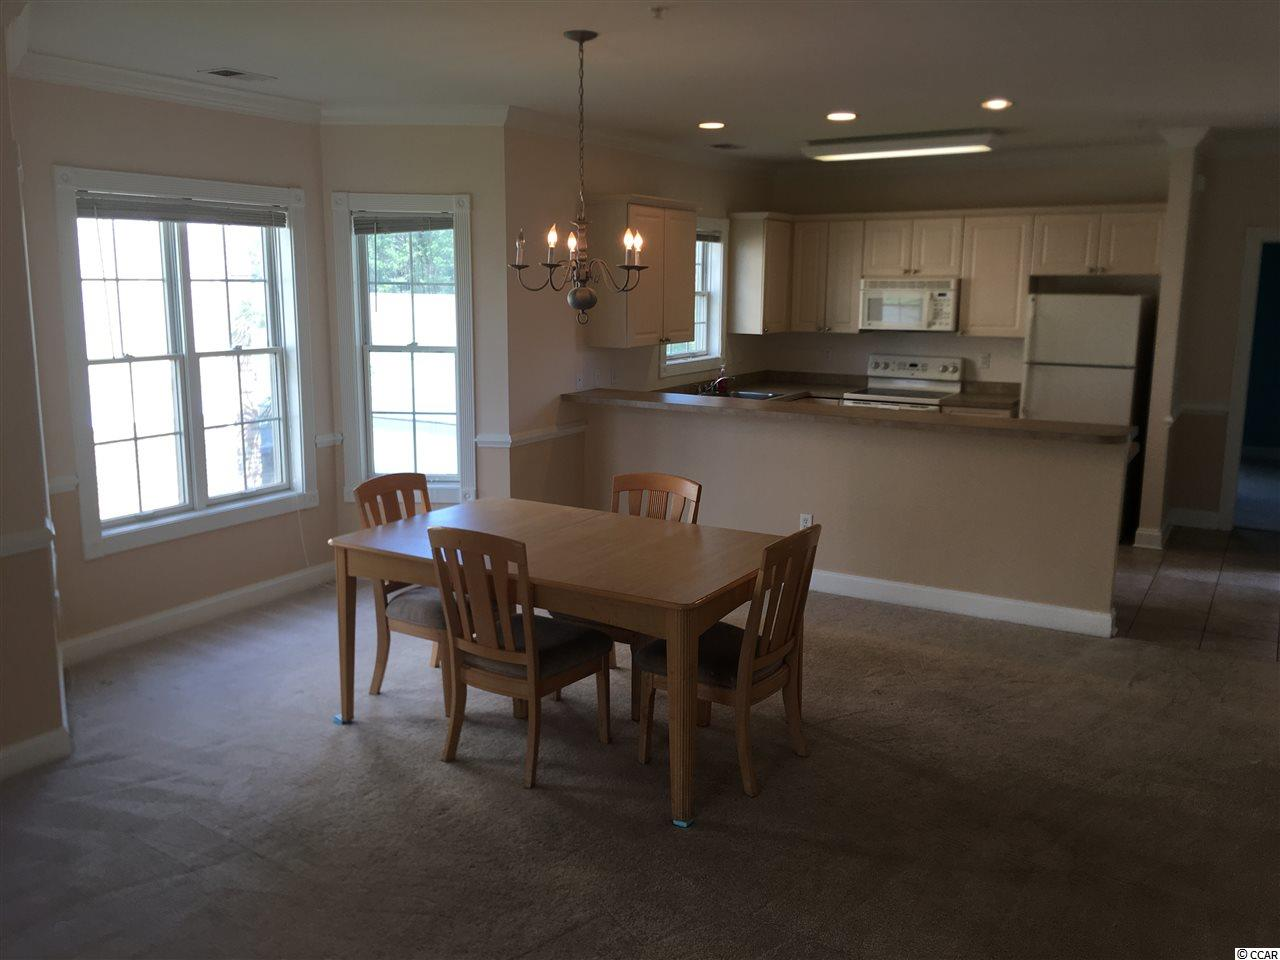 Magnolia Pointe condo at 4821 LUSTER LEAF CIRCLE 205 for sale. 1718871